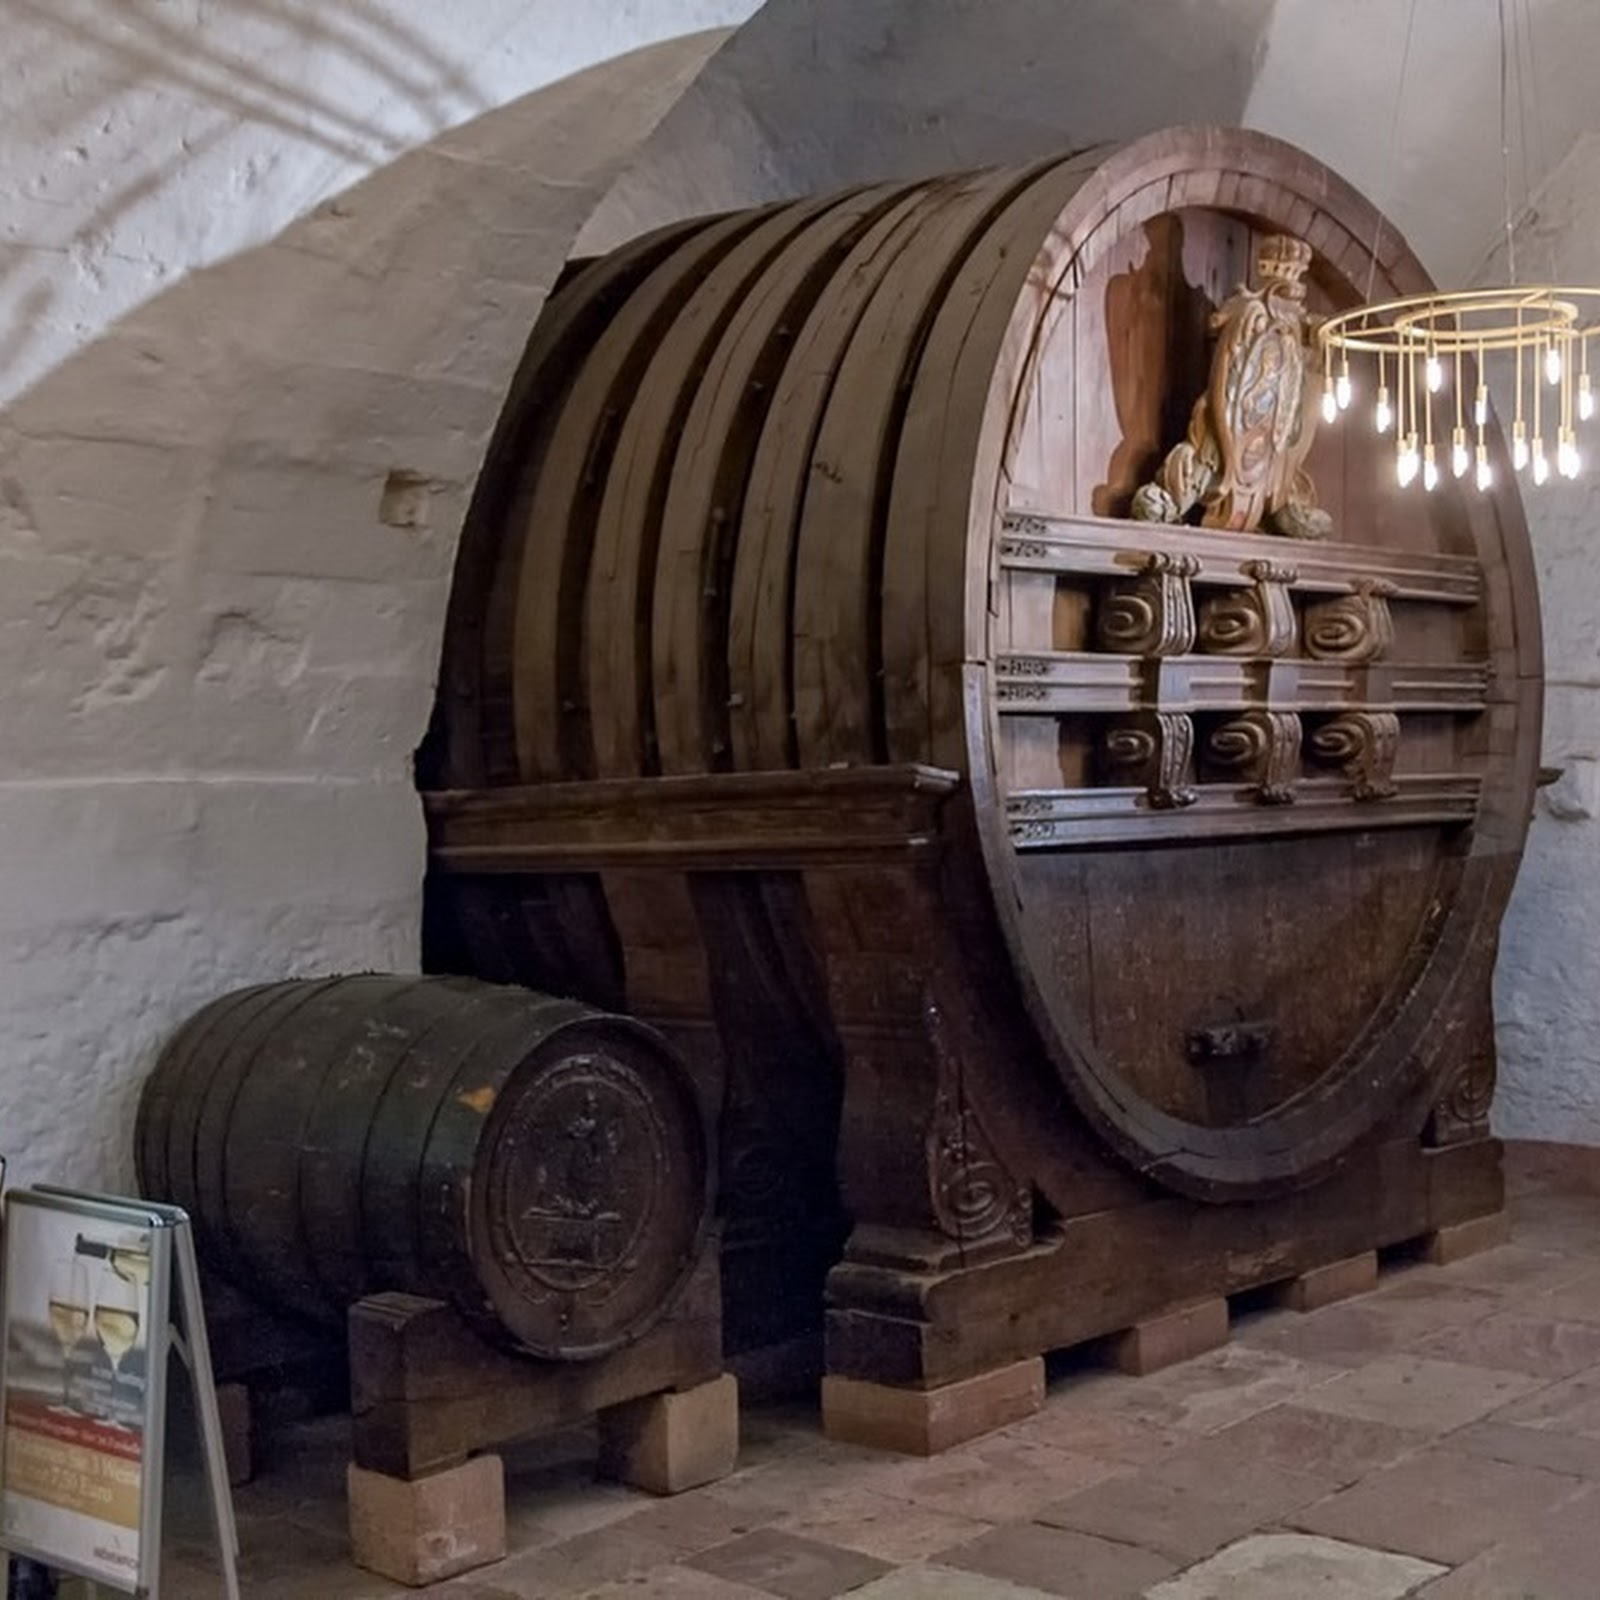 The Gigantic Wine Barrel of Heidelberg